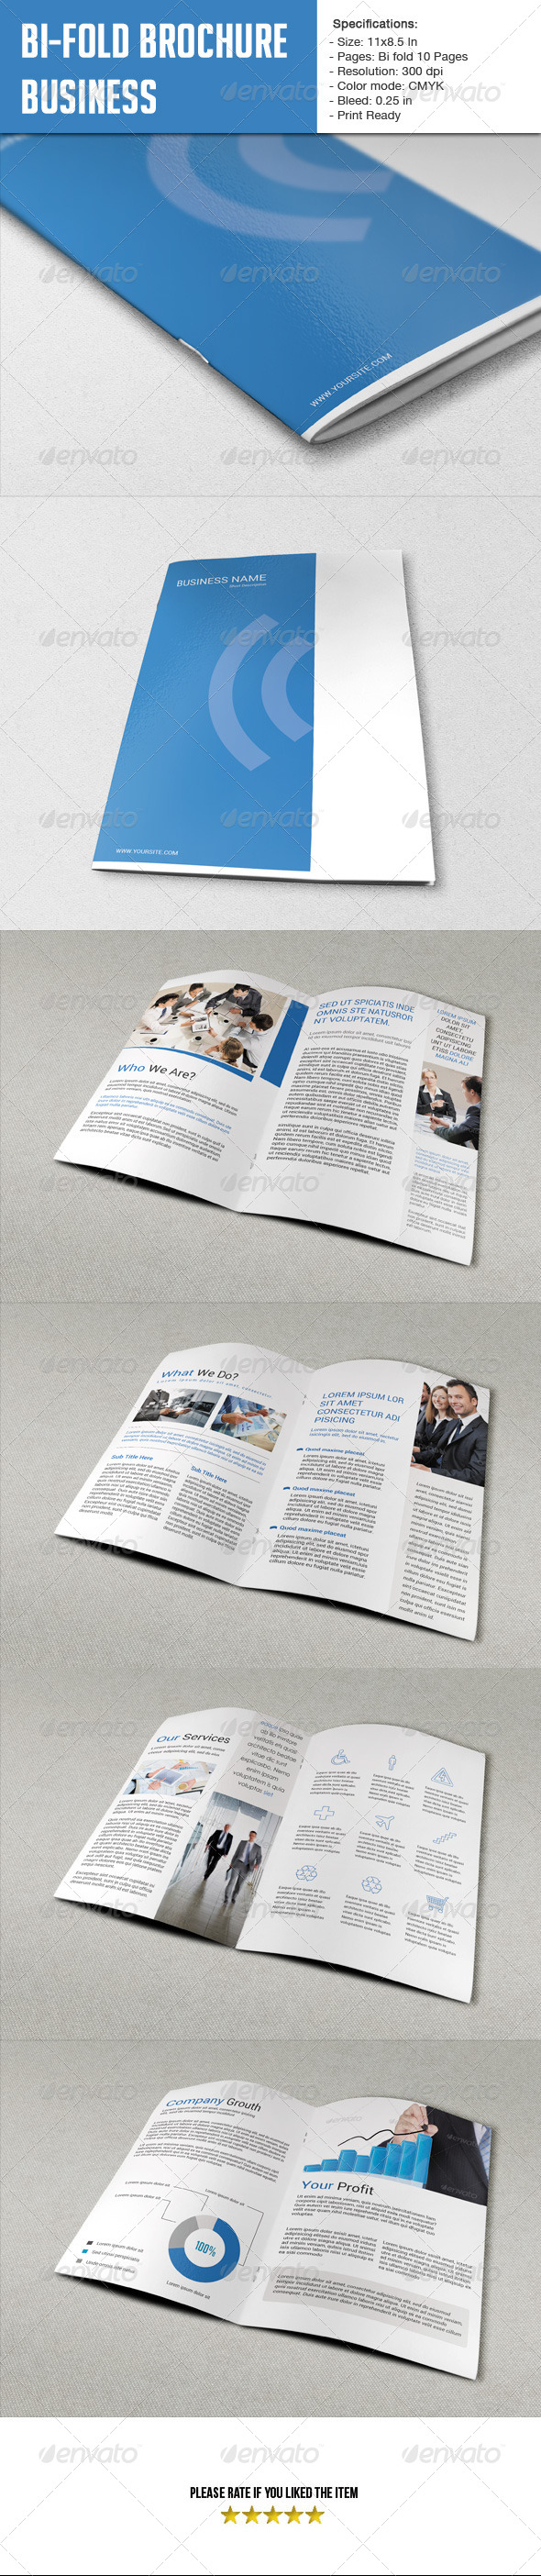 GraphicRiver Bifold Brochure for Business-10 Pages 6050141